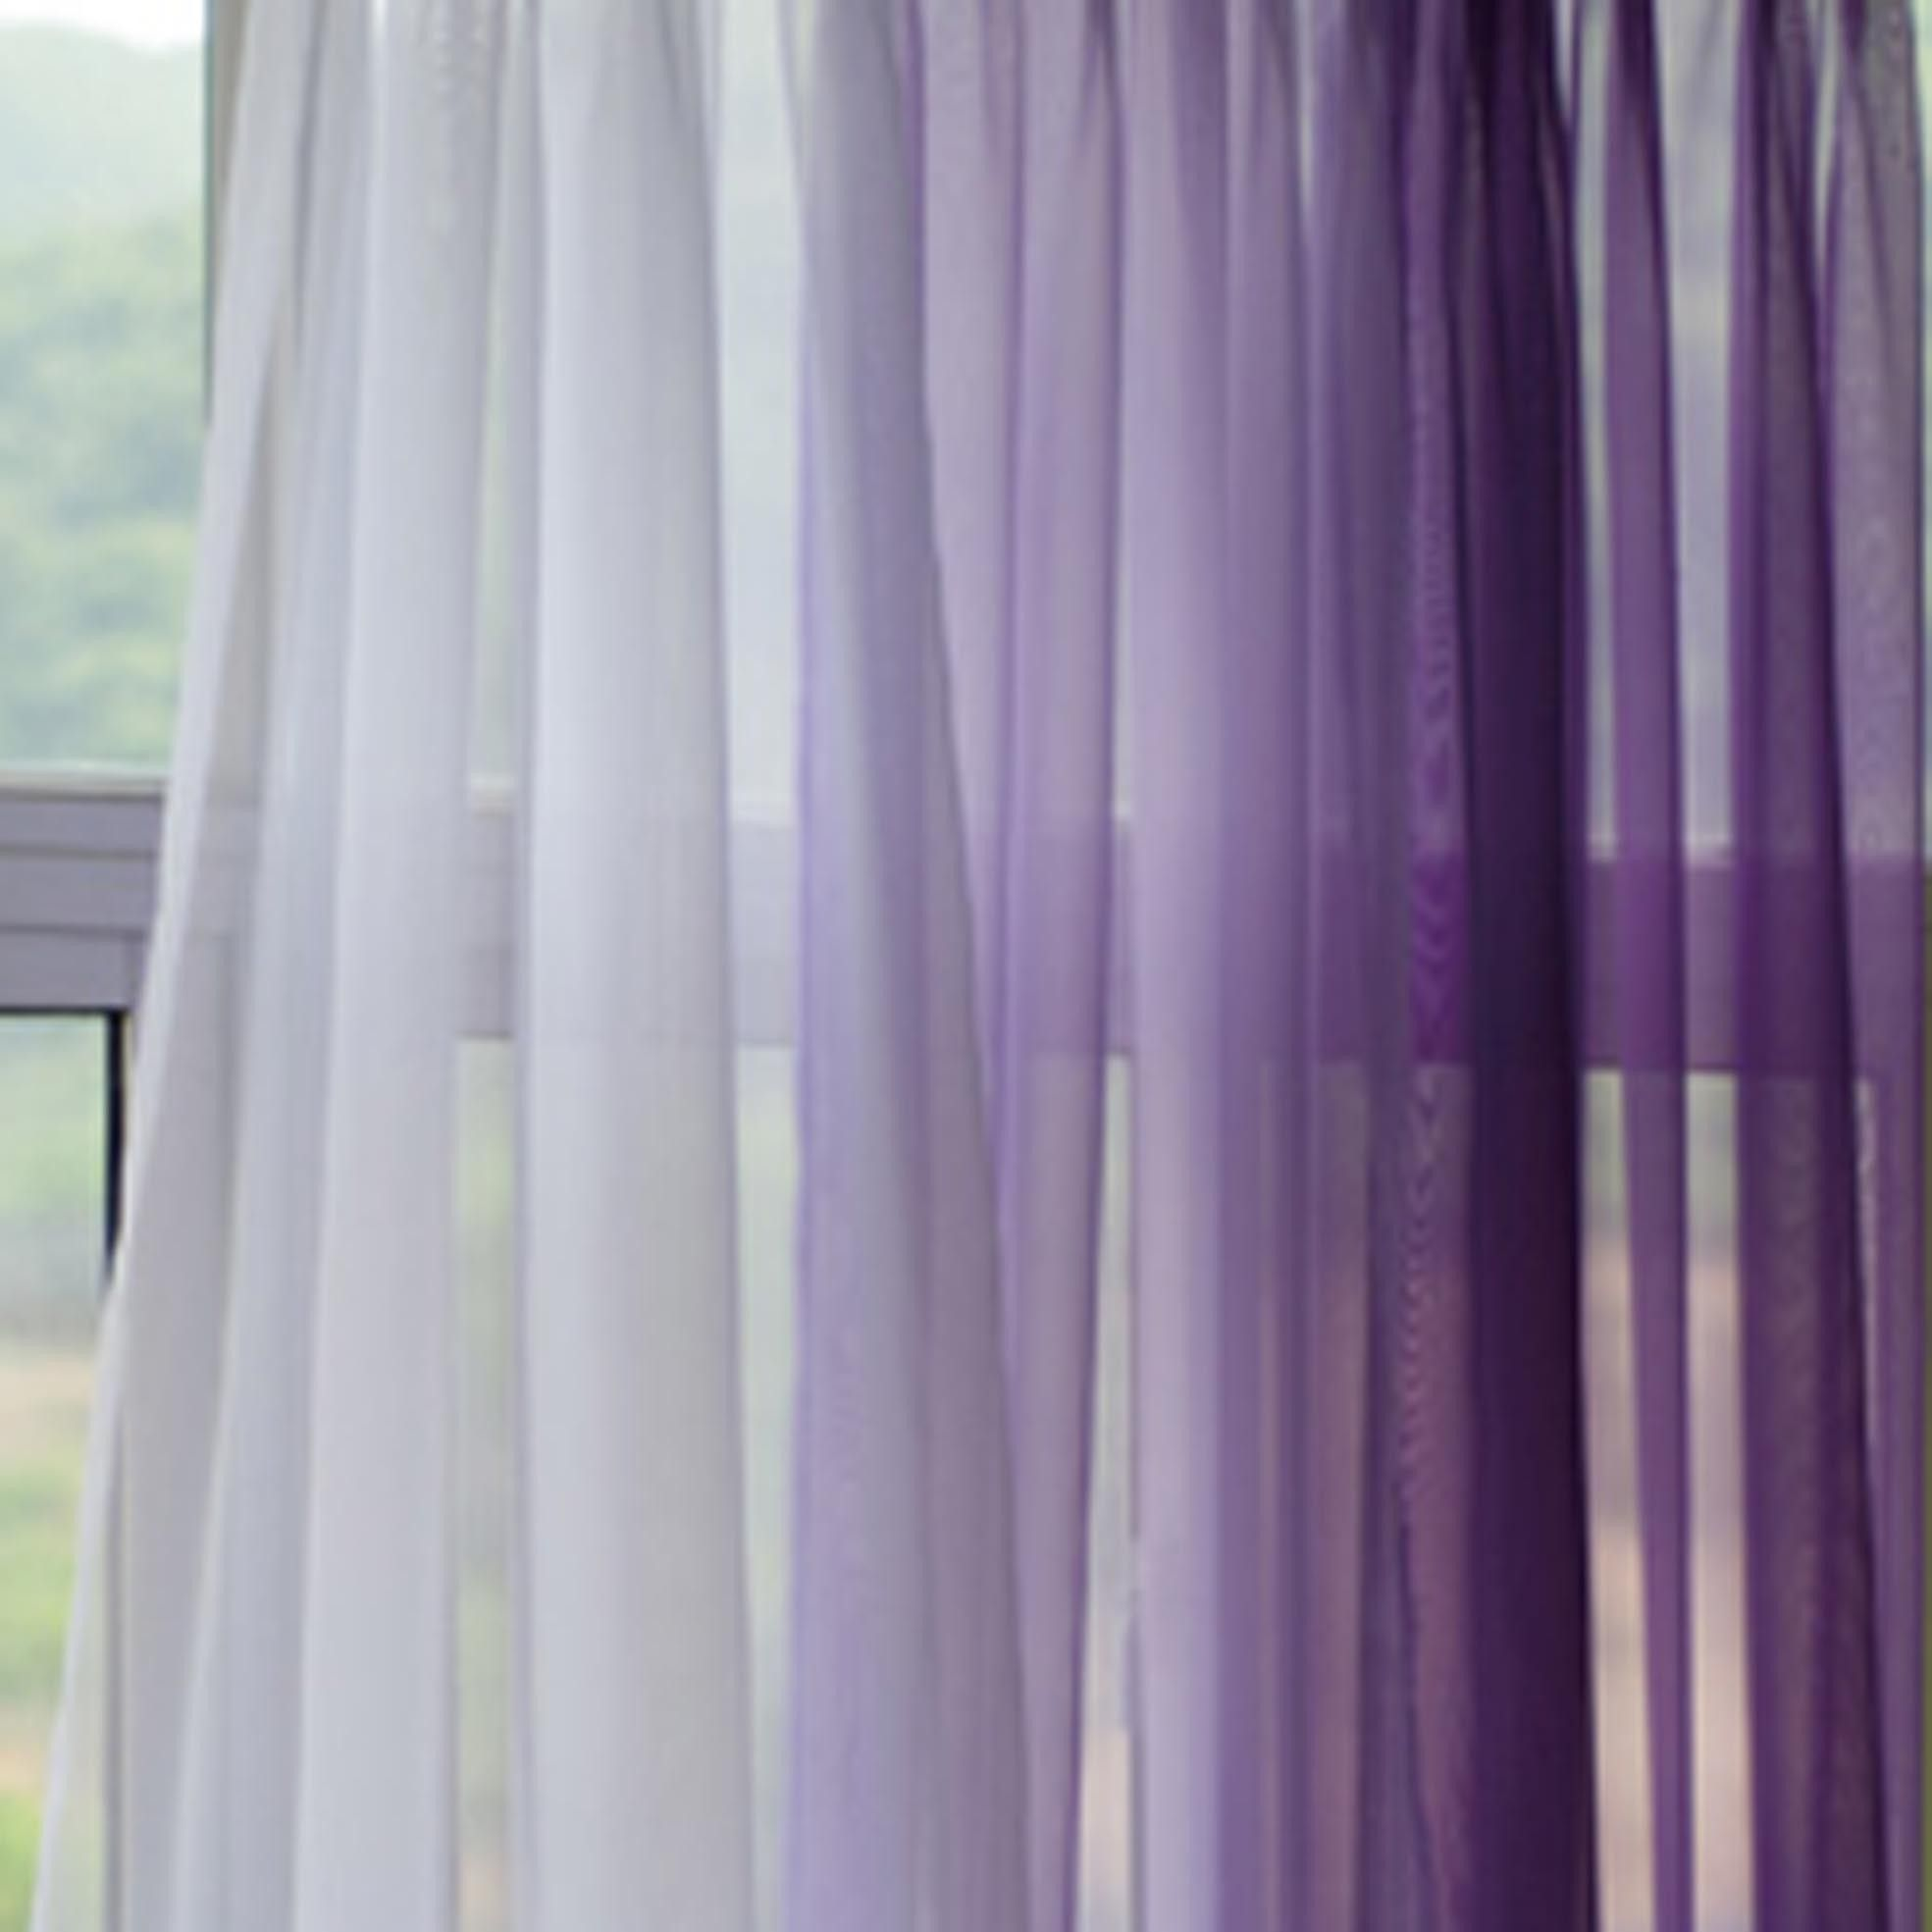 w free print shipping blind extreme aliexpress luxury buy balcony get curtain purple the customize cloth shade classic and com damask on wholesale classical blinds rustic window quality curtains